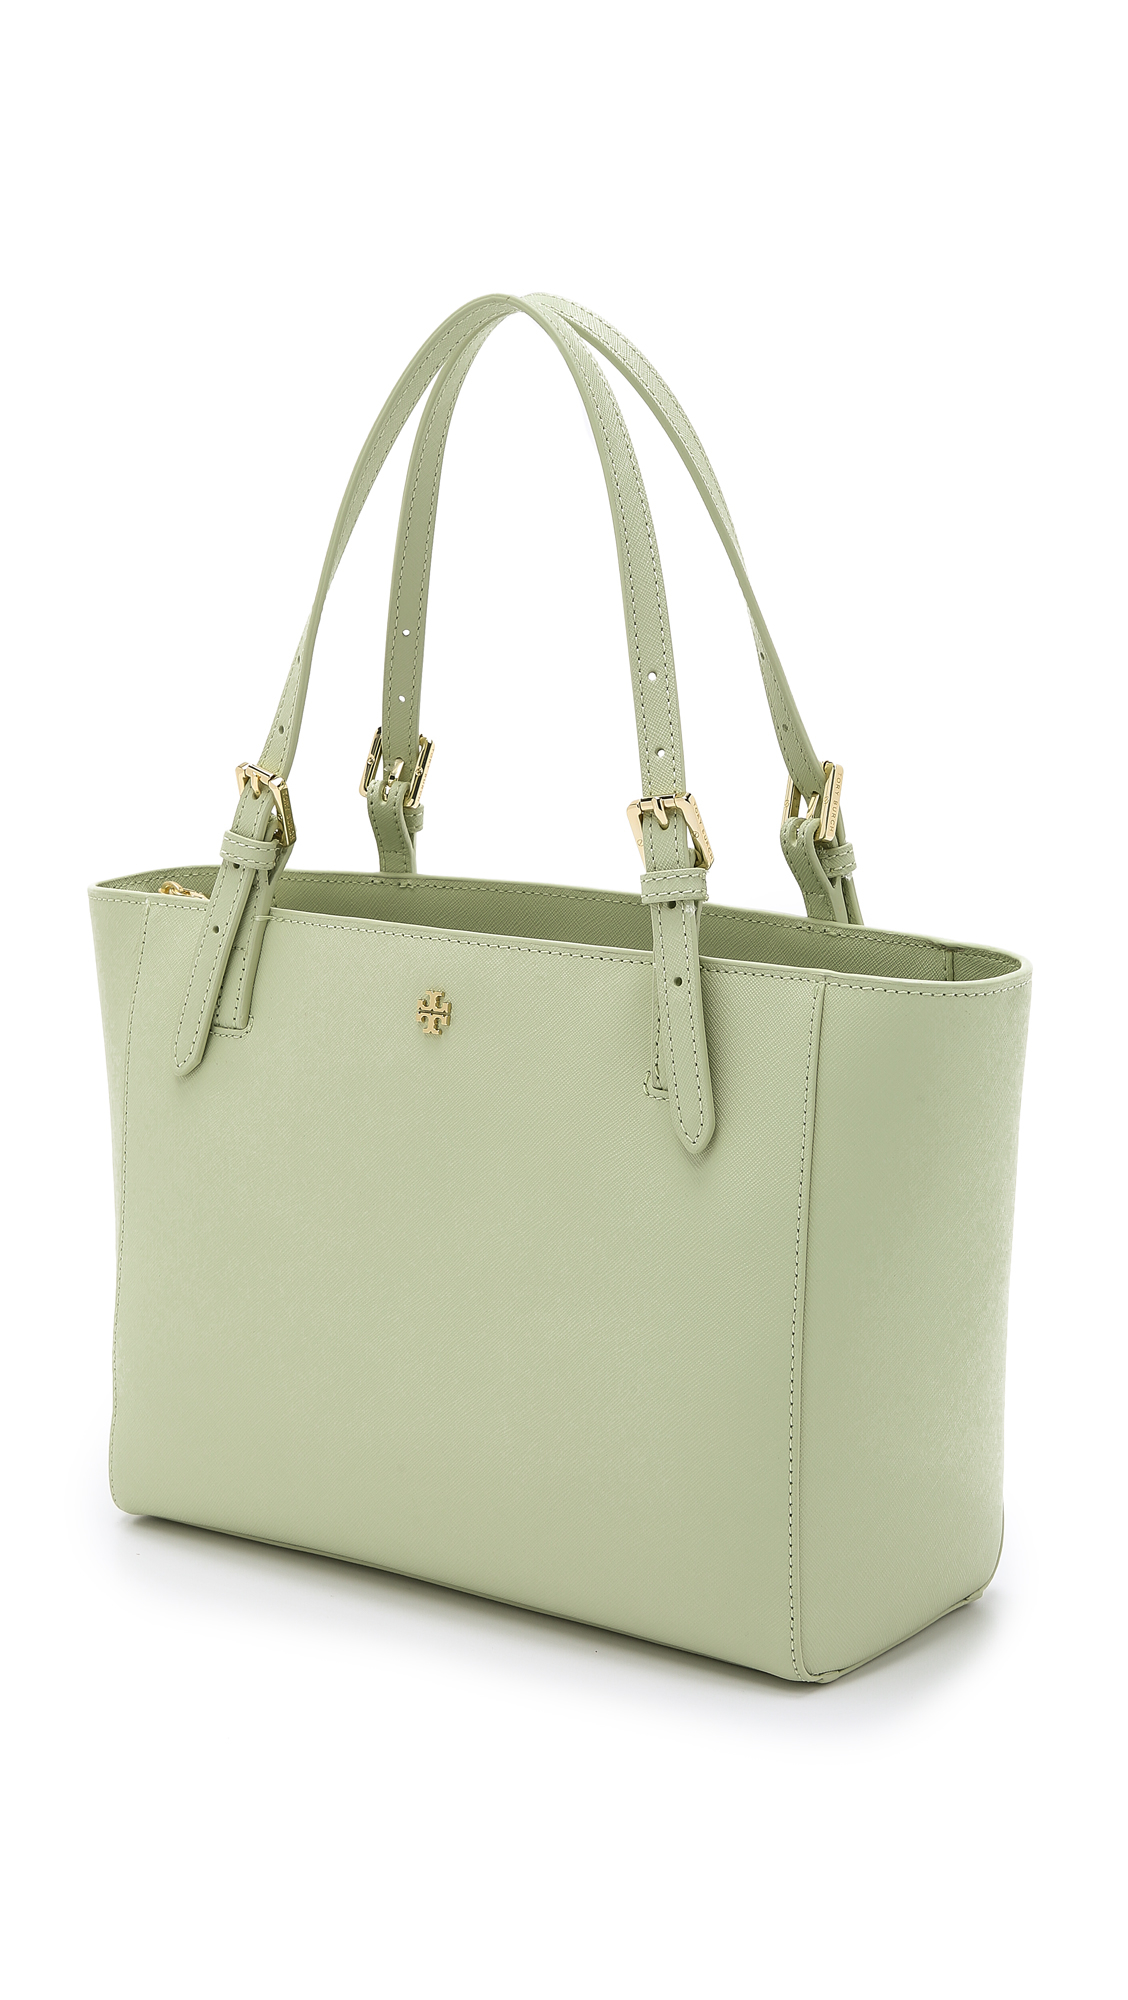 4ed3f13a356 Lyst - Tory Burch York Small Buckle Tote